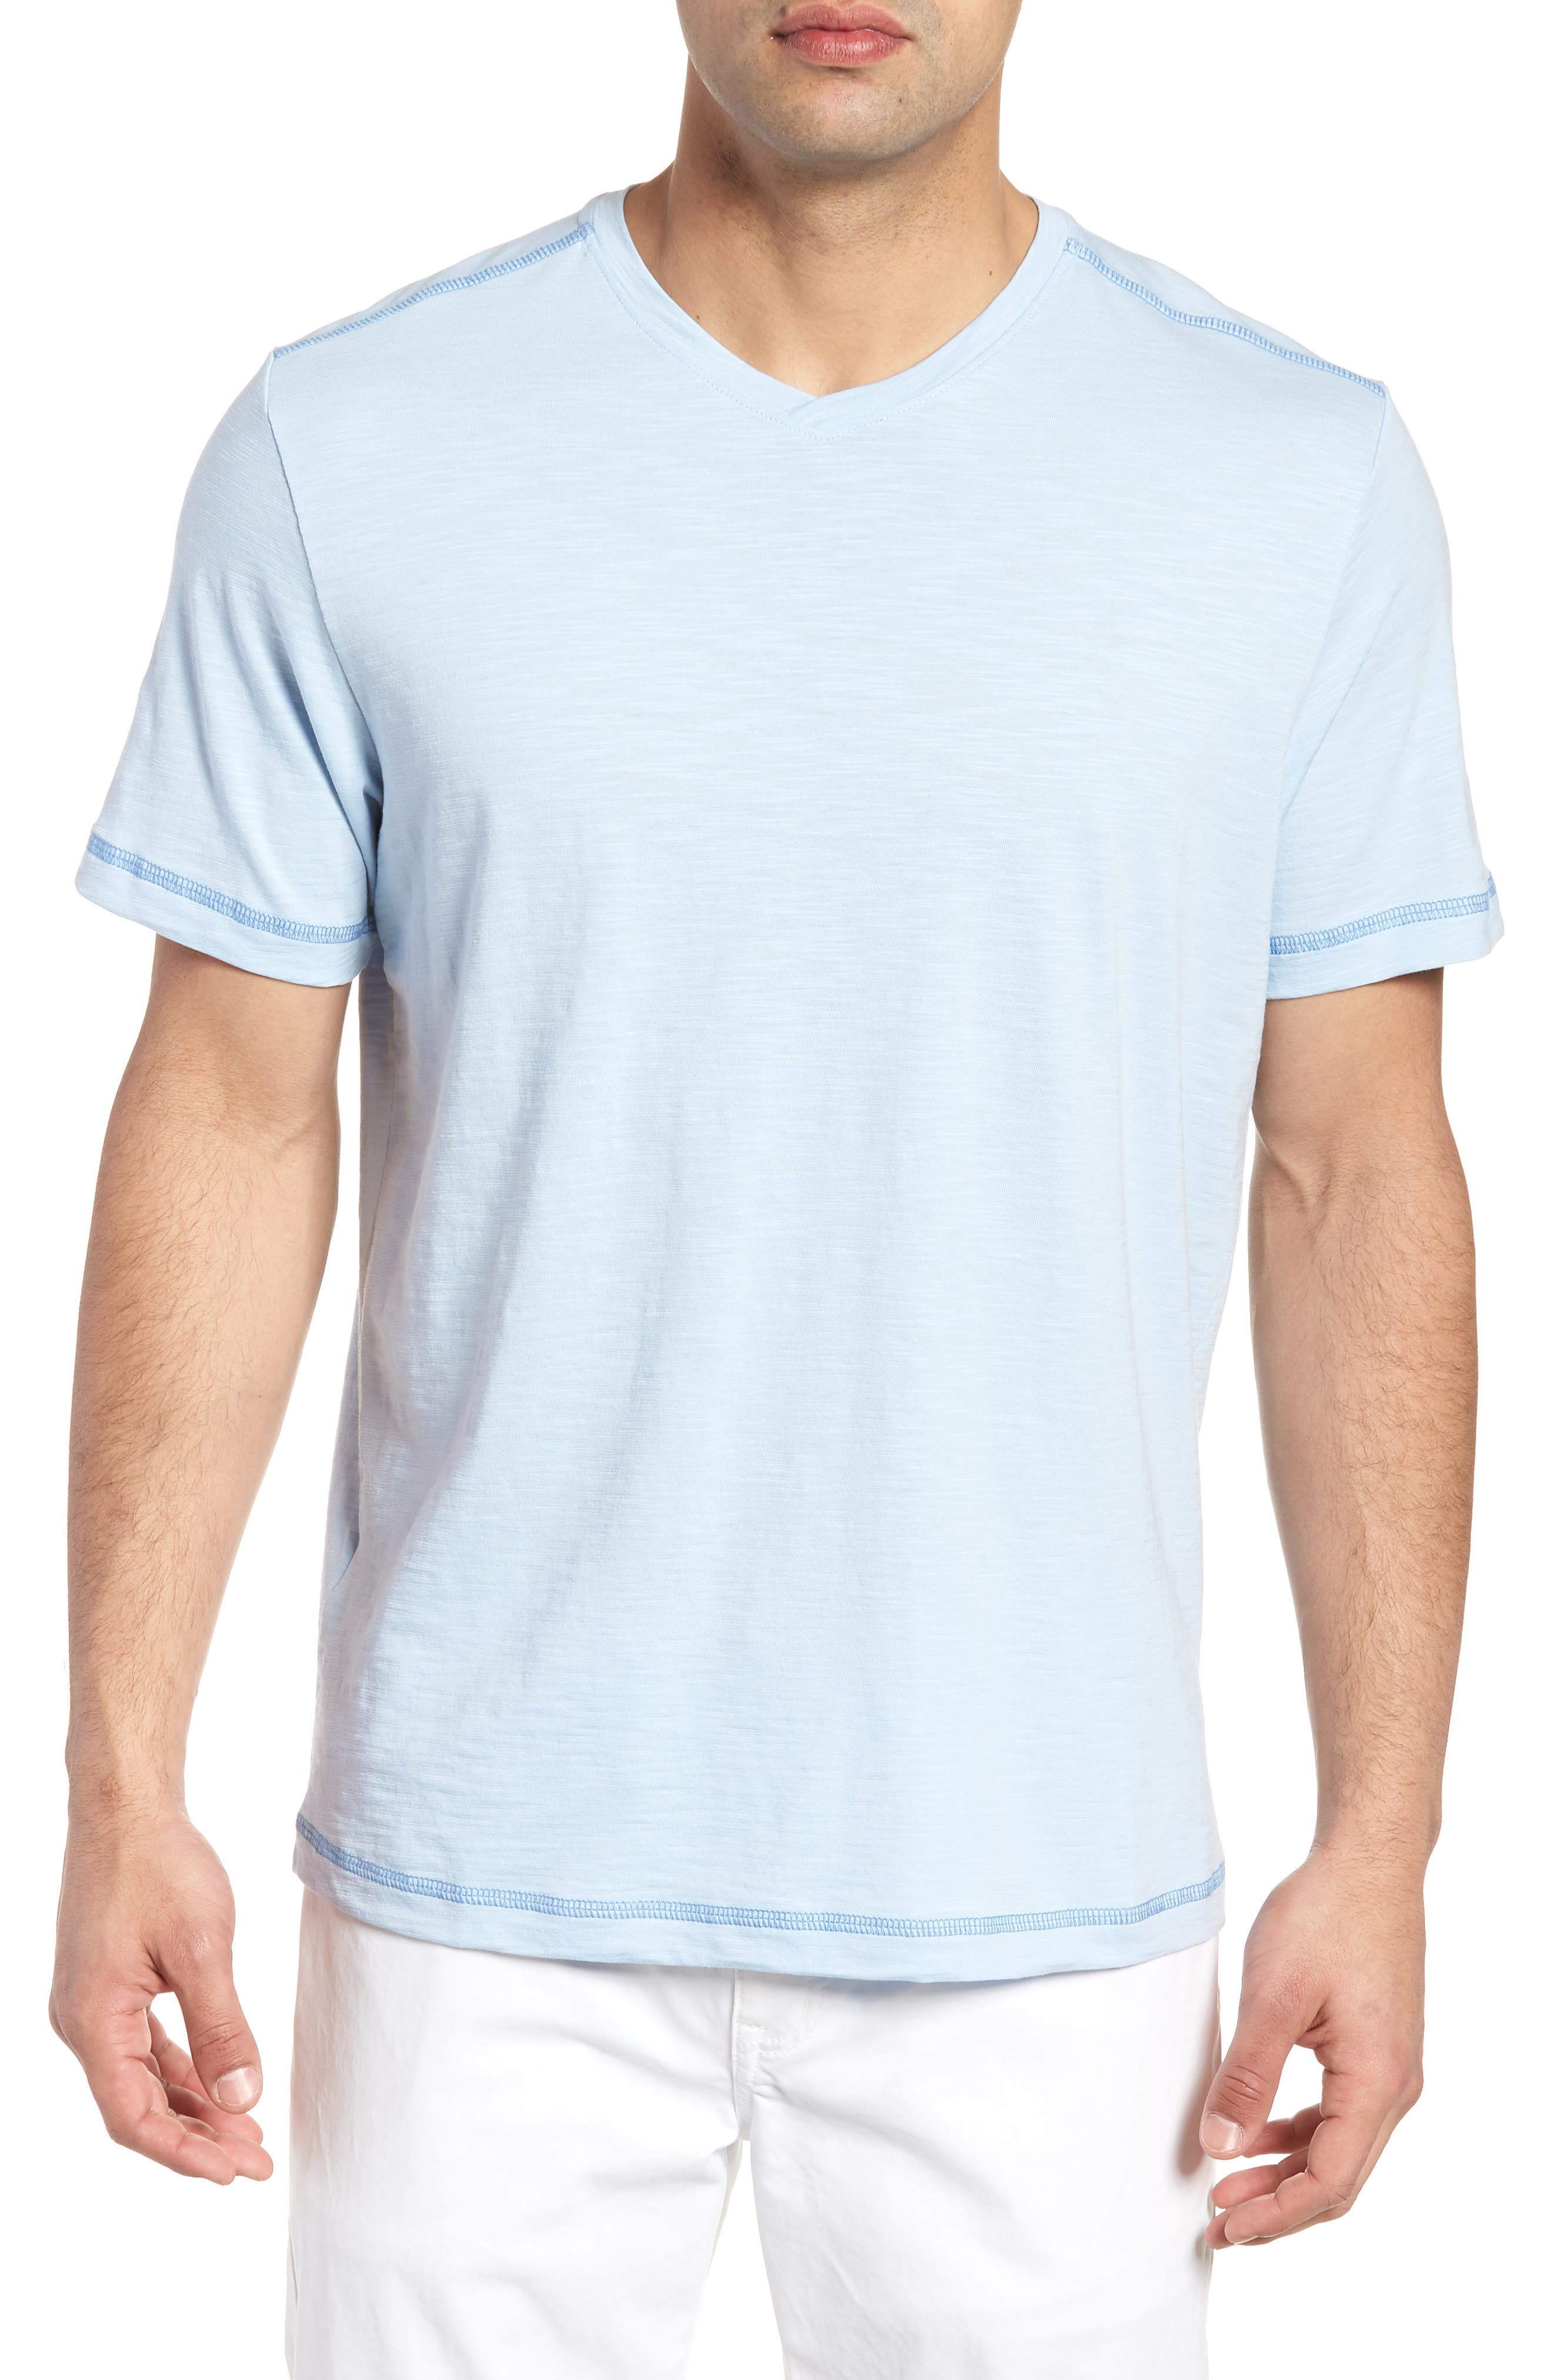 Portside Palms V-Neck T-Shirt,                             Main thumbnail 1, color,                             Icy